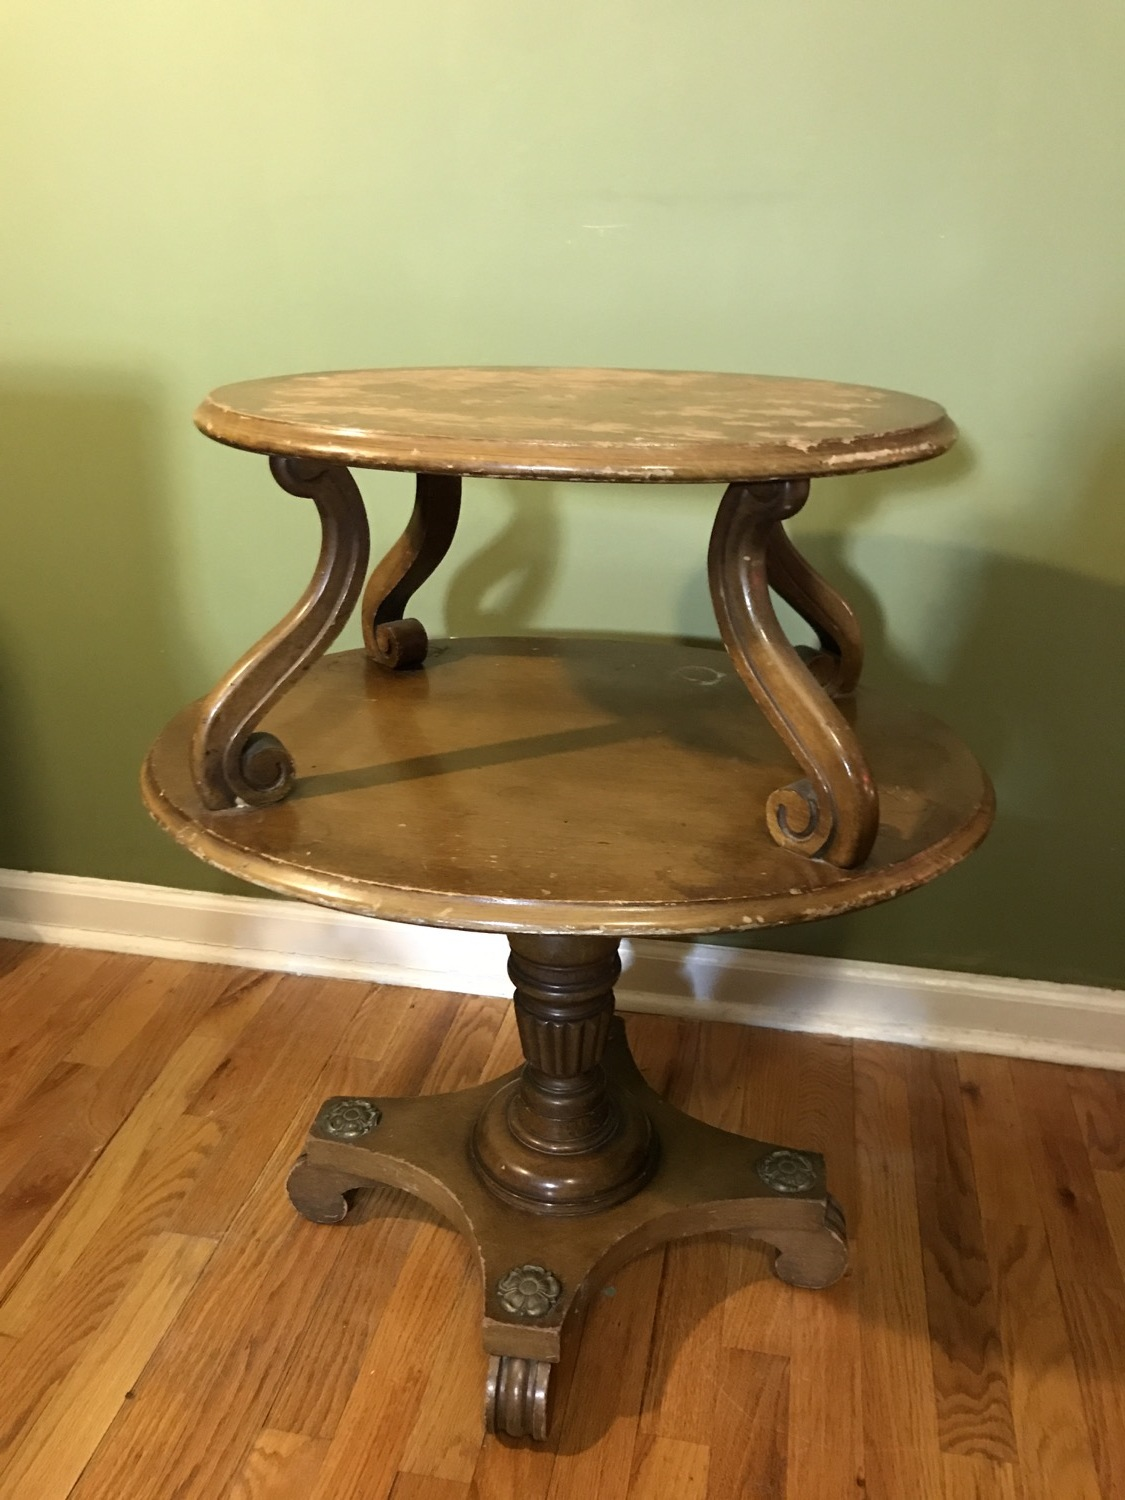 two-tier-table-1.JPG